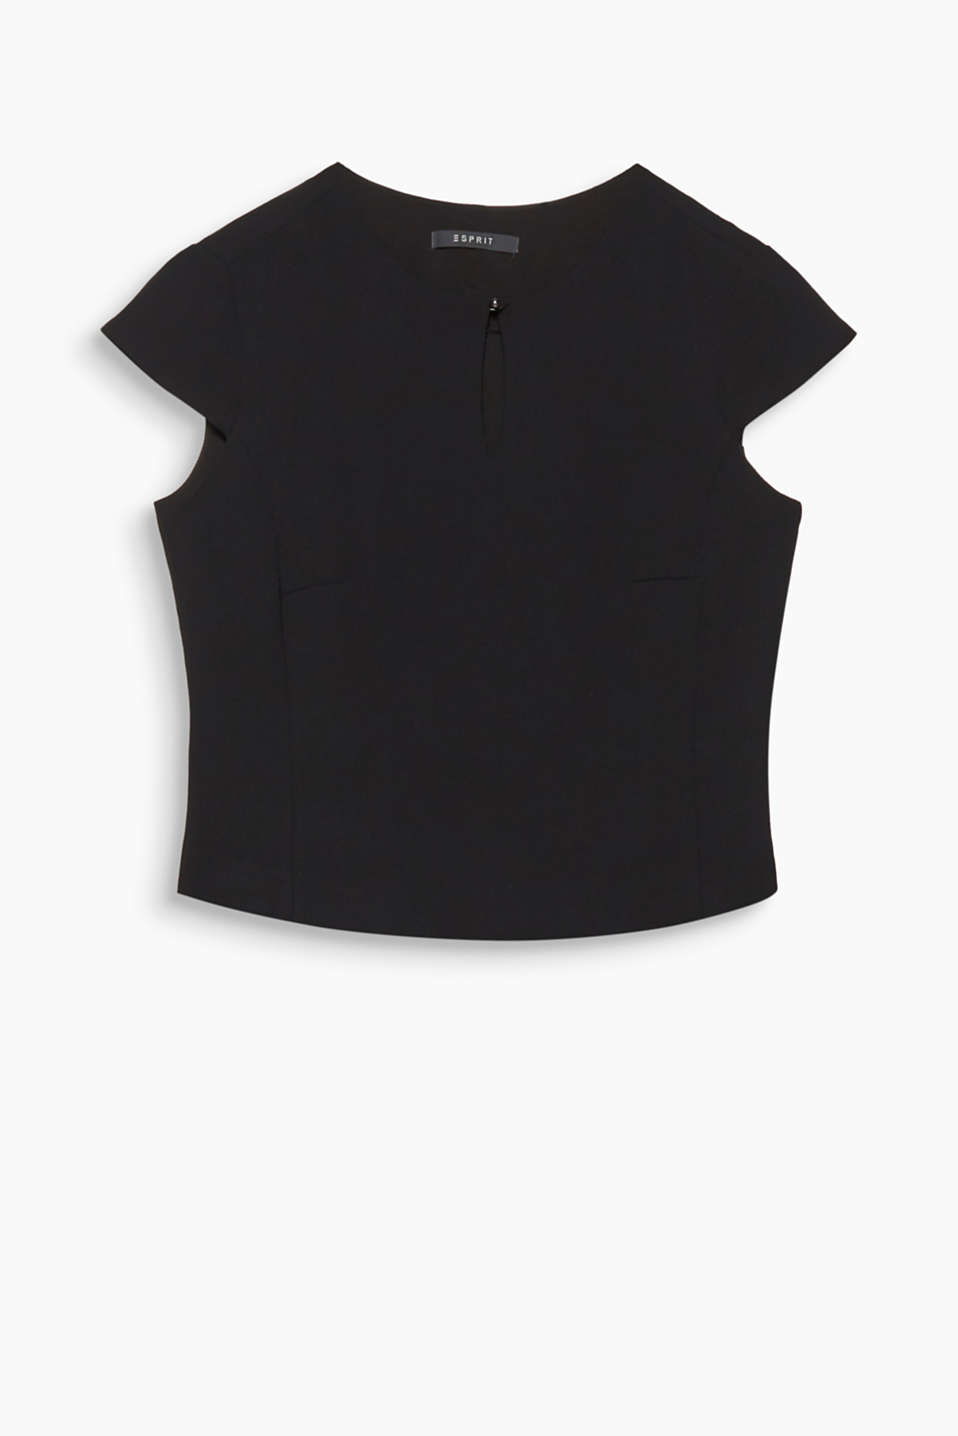 This charming and sexy top features cut-on sleeves plus a button and keyhole cut-out at the neckline